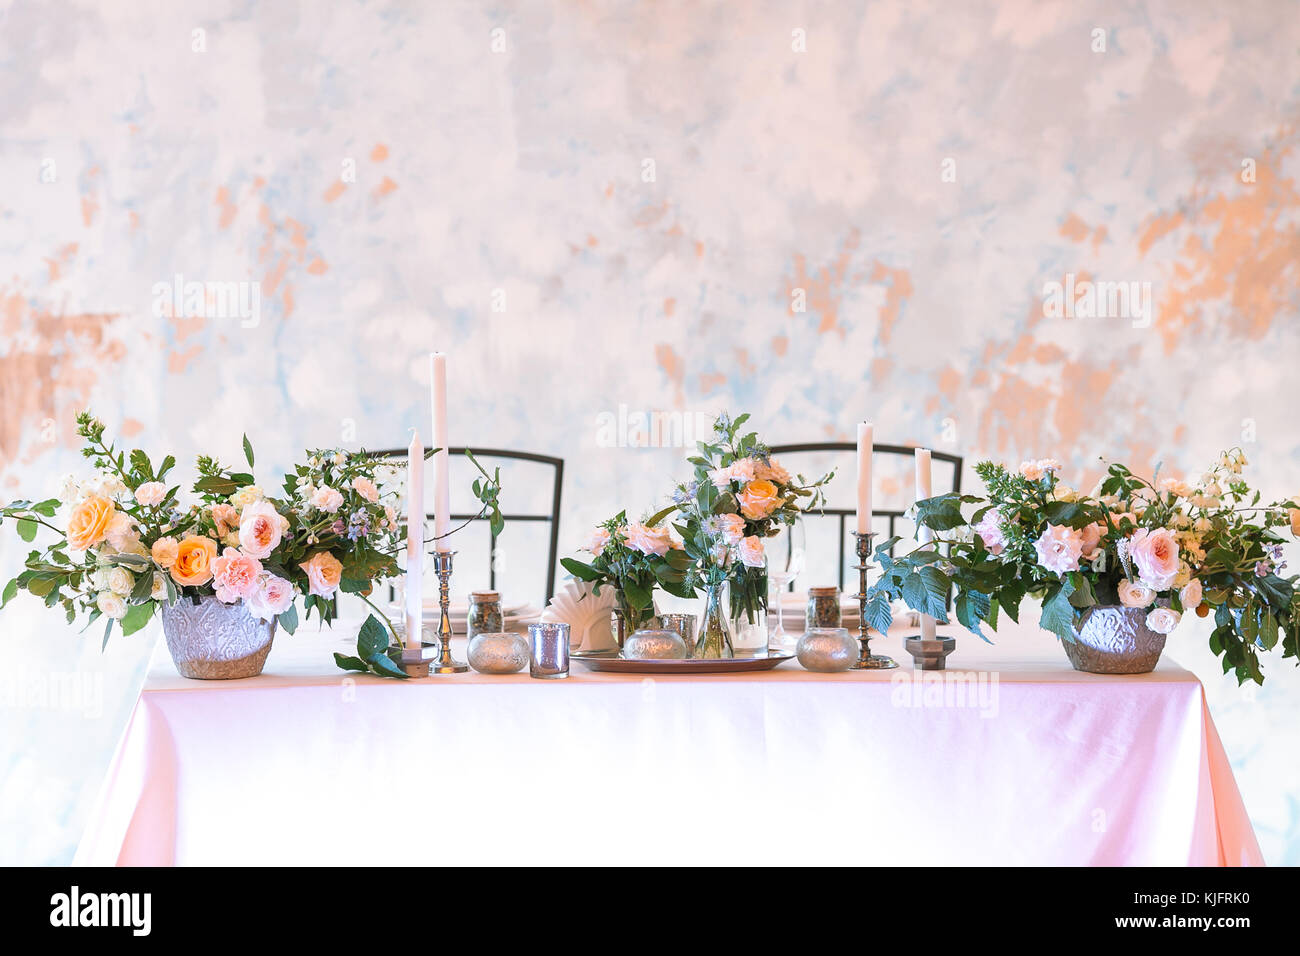 romance dating table setting concept. the most perfect table setting for romantic evening for couple plenty of flowers in big and tiny bunches ...  sc 1 st  Alamy & romance dating table setting concept. the most perfect table Stock ...